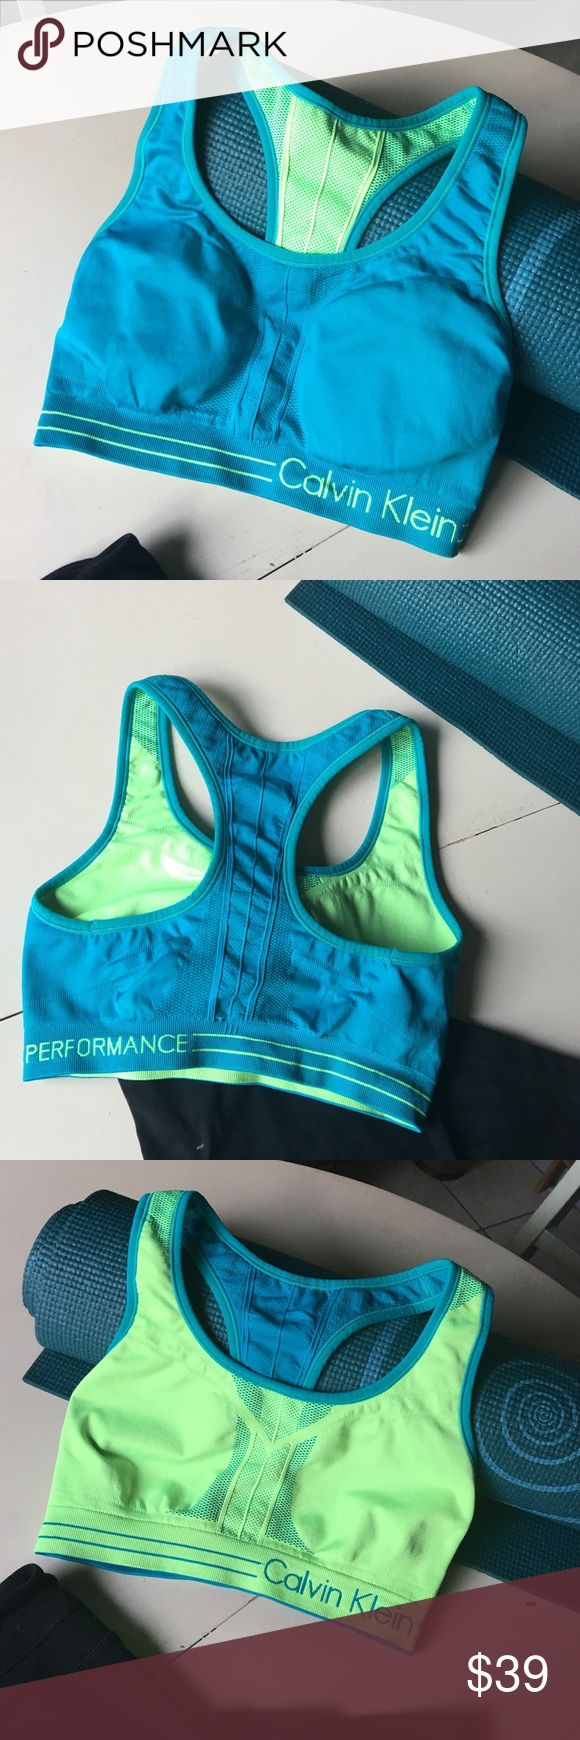 Calvin Klein Aqua + Lime Reversible Sports Bra Add some energy to your workout wardrobe with this bright Aqua + lime Reversible Sports Bra from Calvin Klein Performance. Very breathable fabric, plenty of stretch but holds its shapes and gives good support for high impact exercise. Tags removed. Excellent condition. Size Medium. Calvin Klein Intimates & Sleepwear Bras